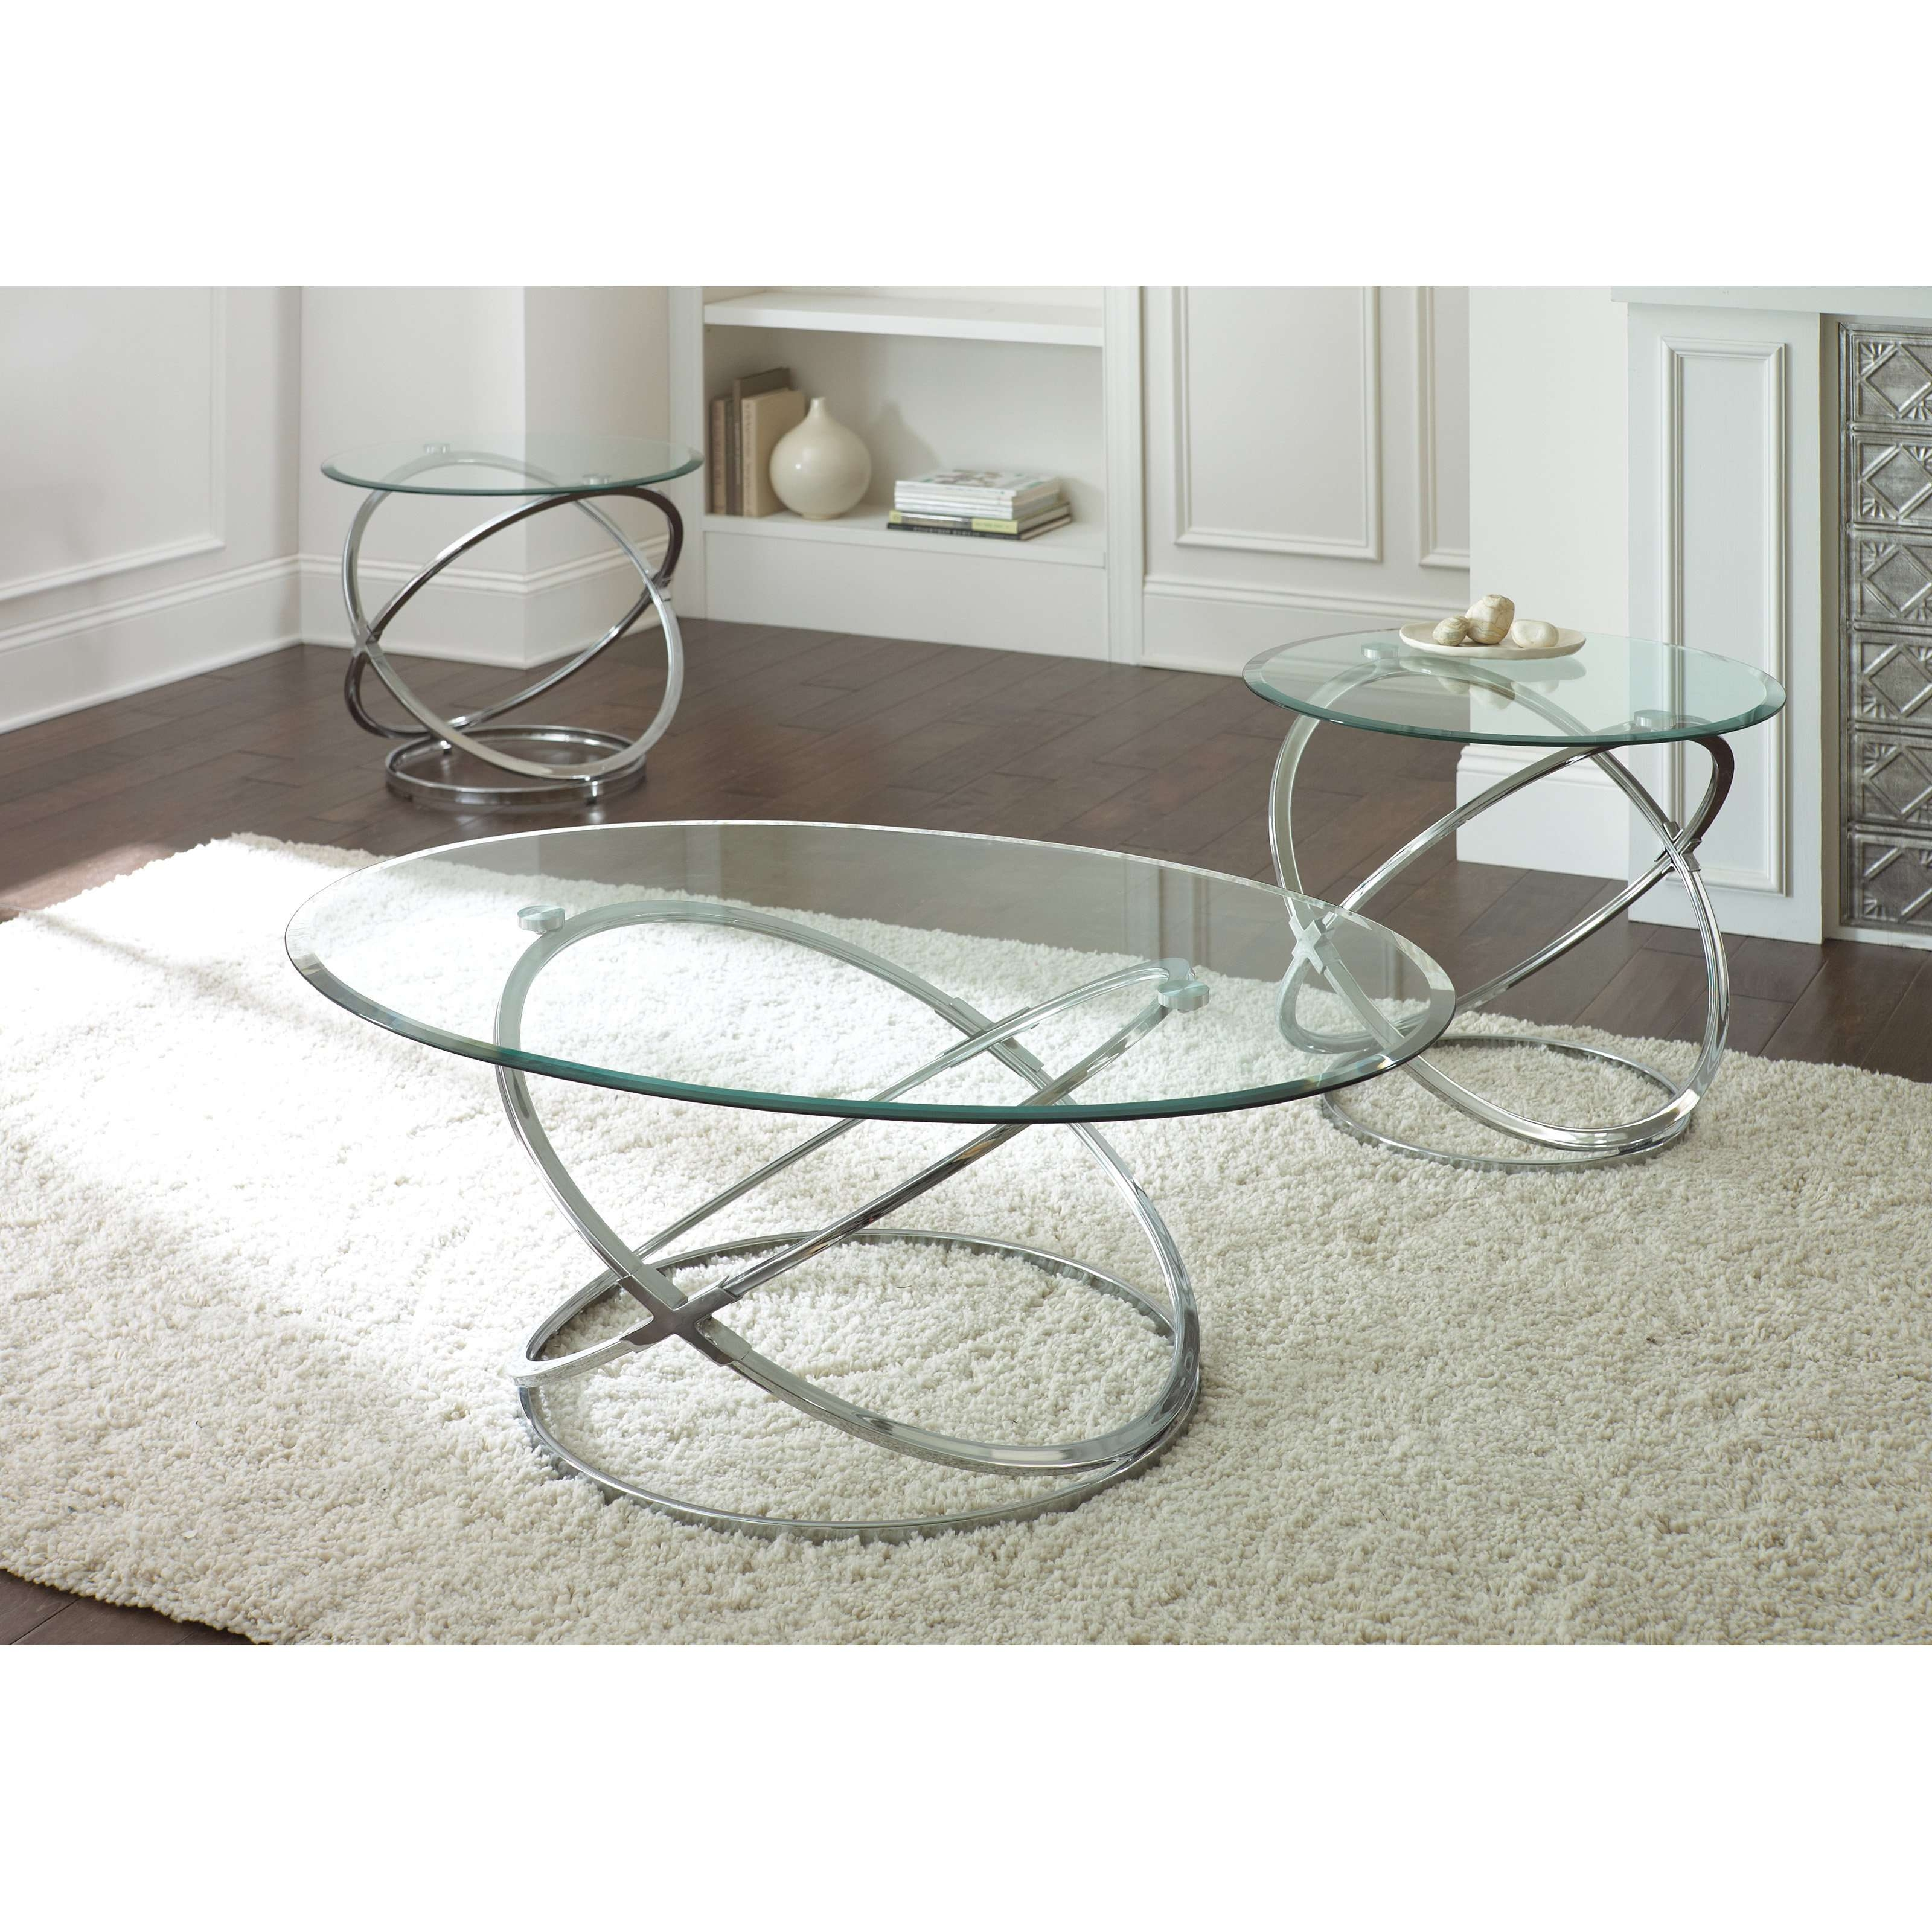 Well Liked Chrome And Glass Coffee Tables With Regard To Steve Silver Orion Oval Chrome And Glass Coffee Table Set (View 18 of 20)